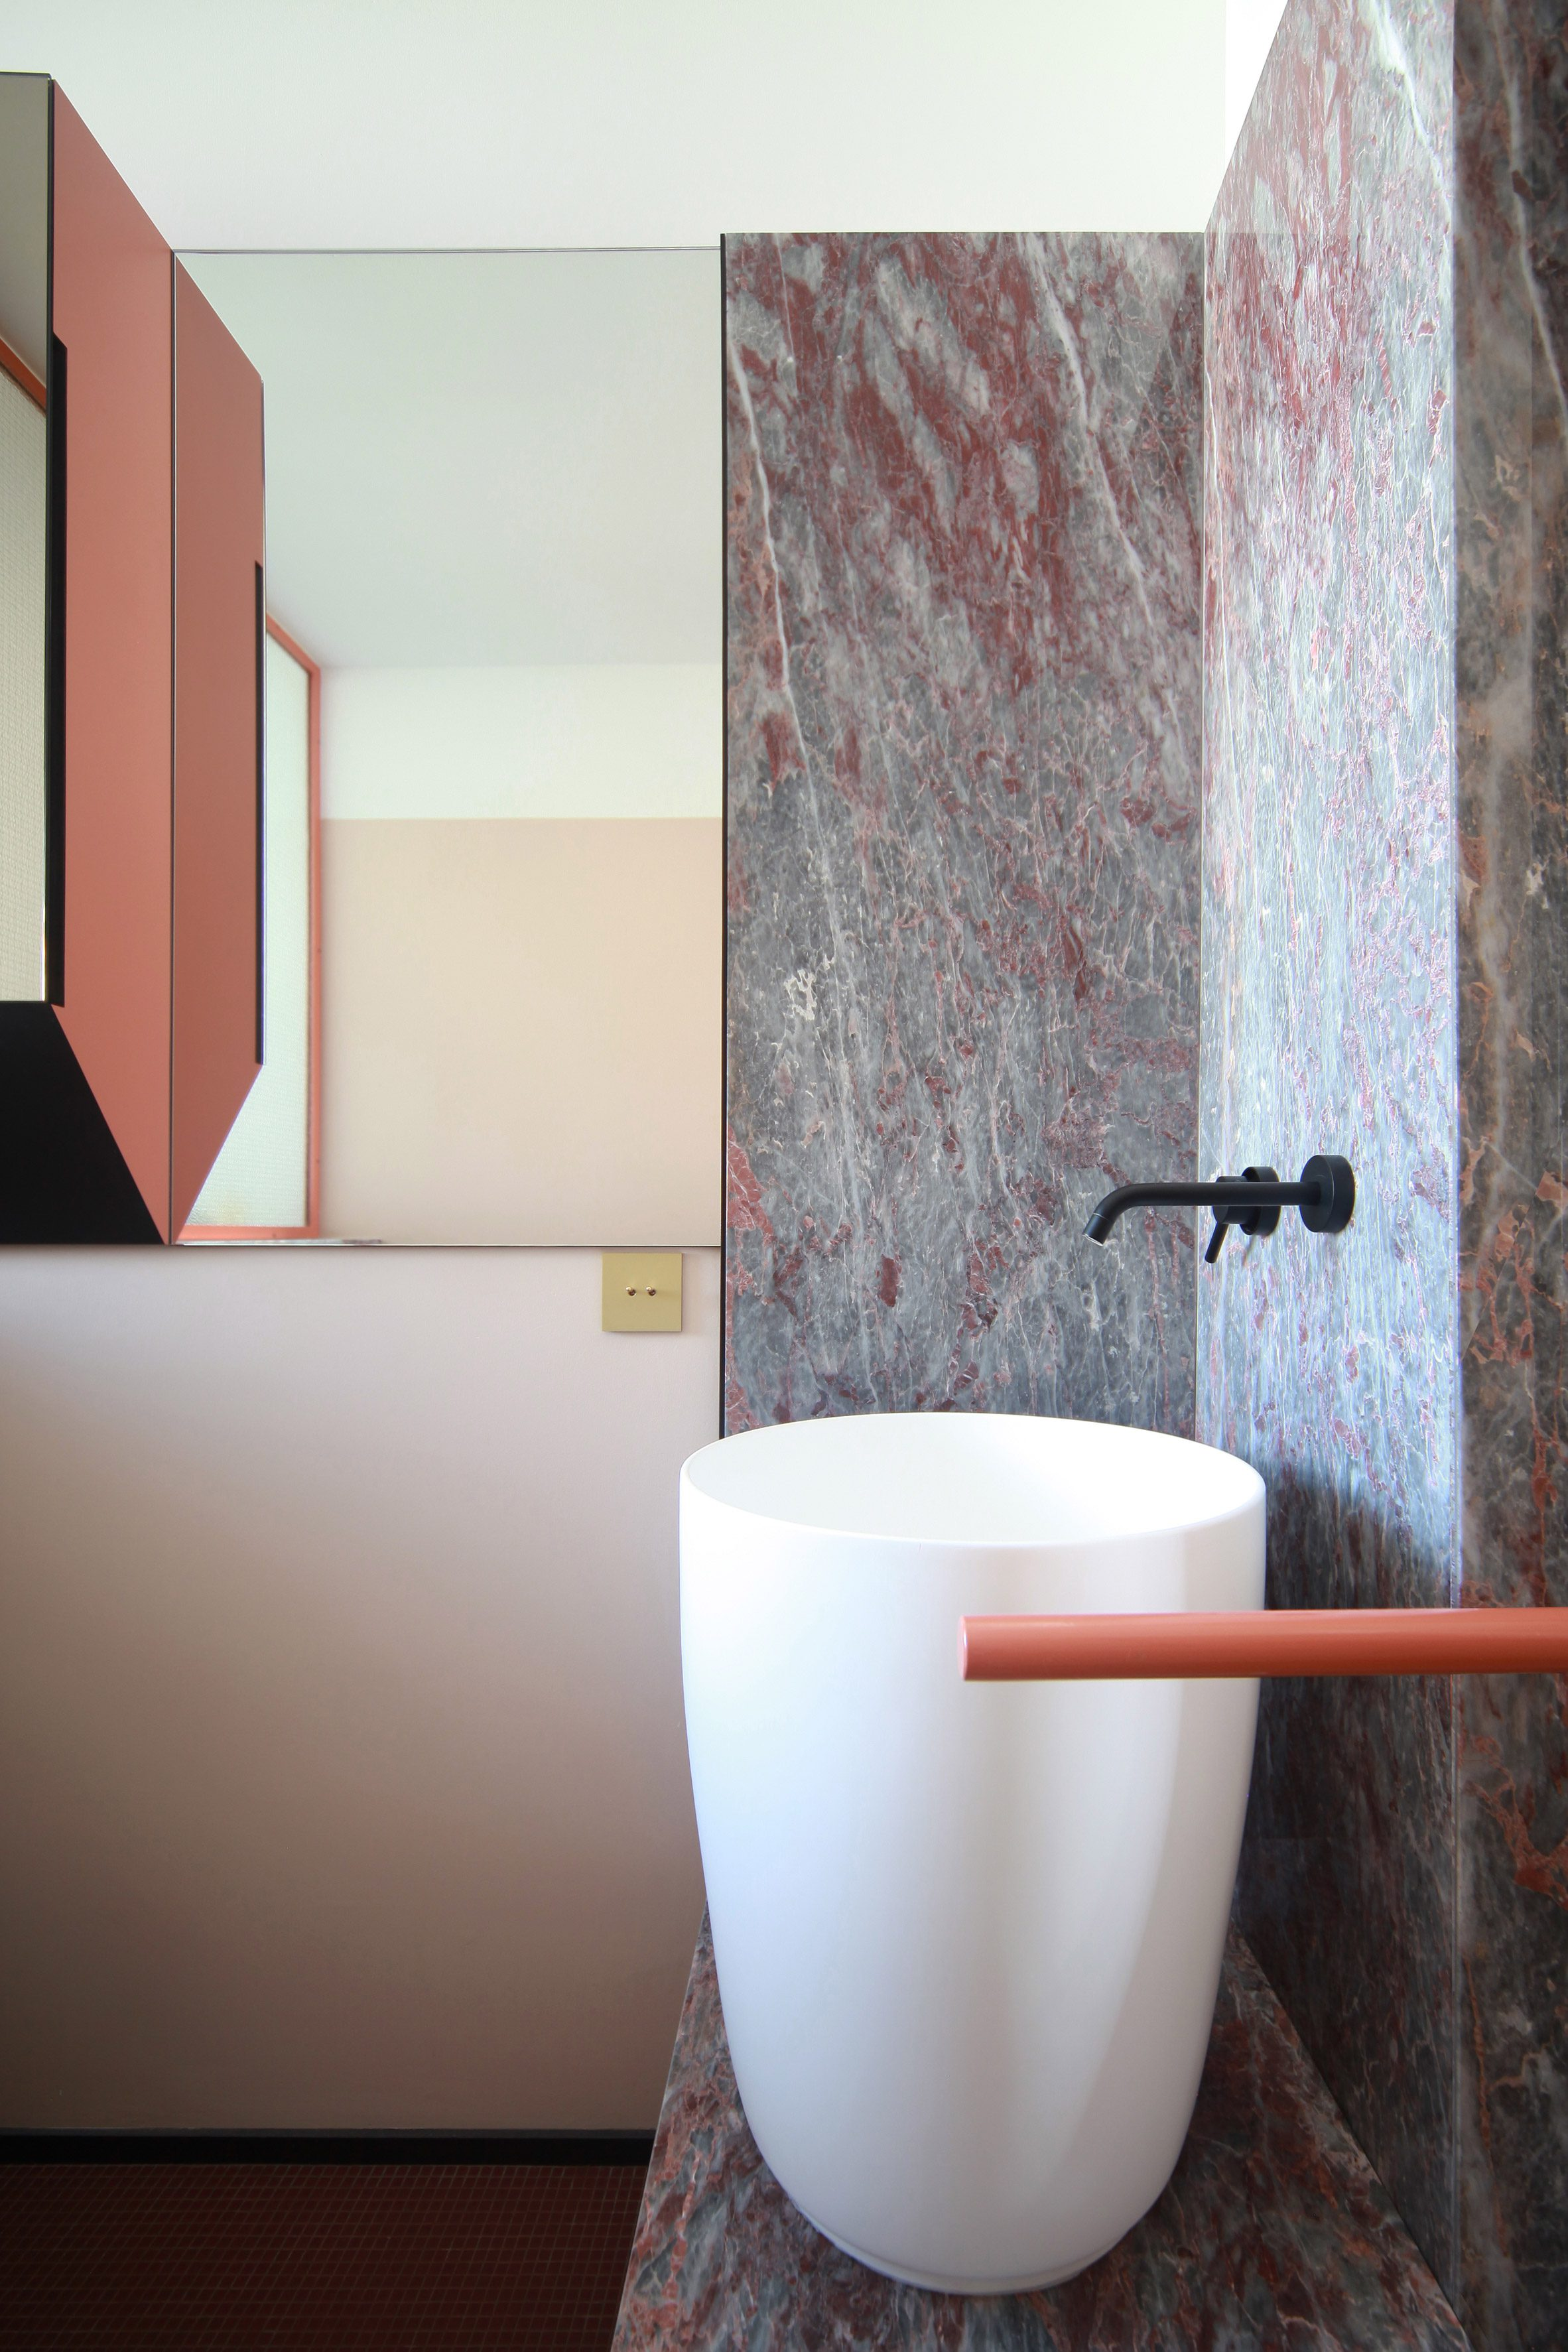 Salome marble tiles above a sink